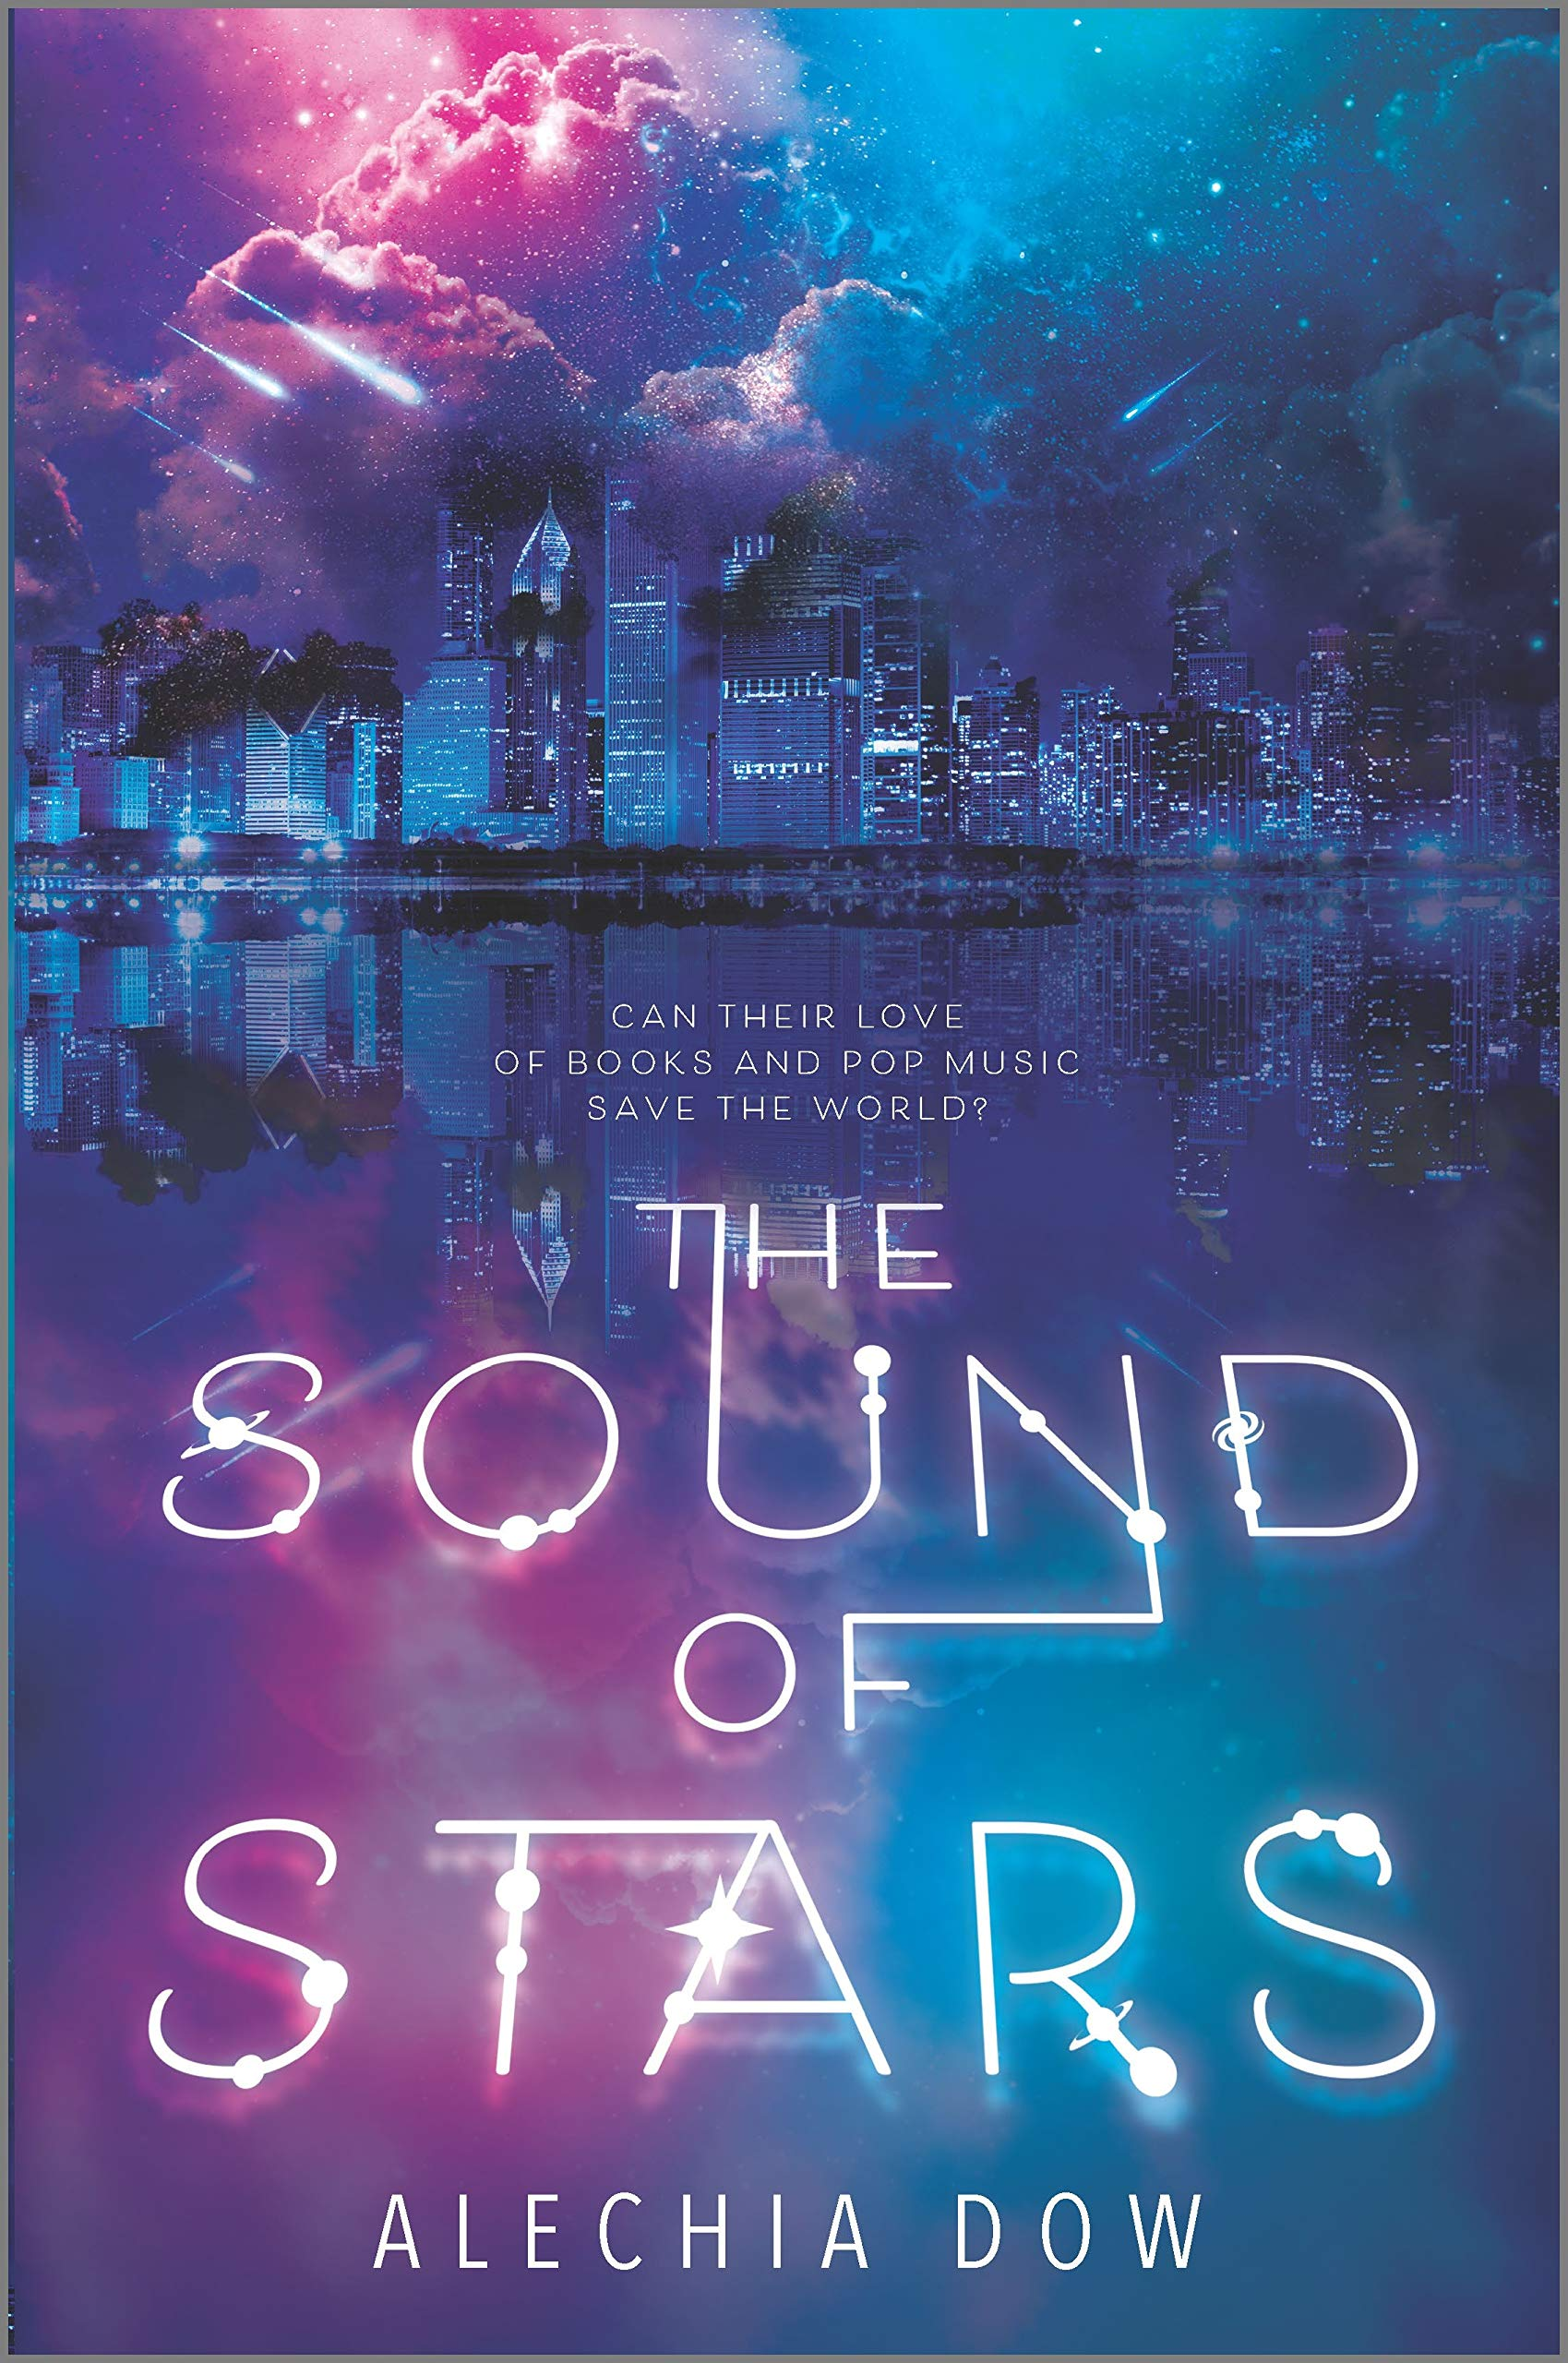 Amazon.com: The Sound of Stars (9781335911551): Dow, Alechia: Books